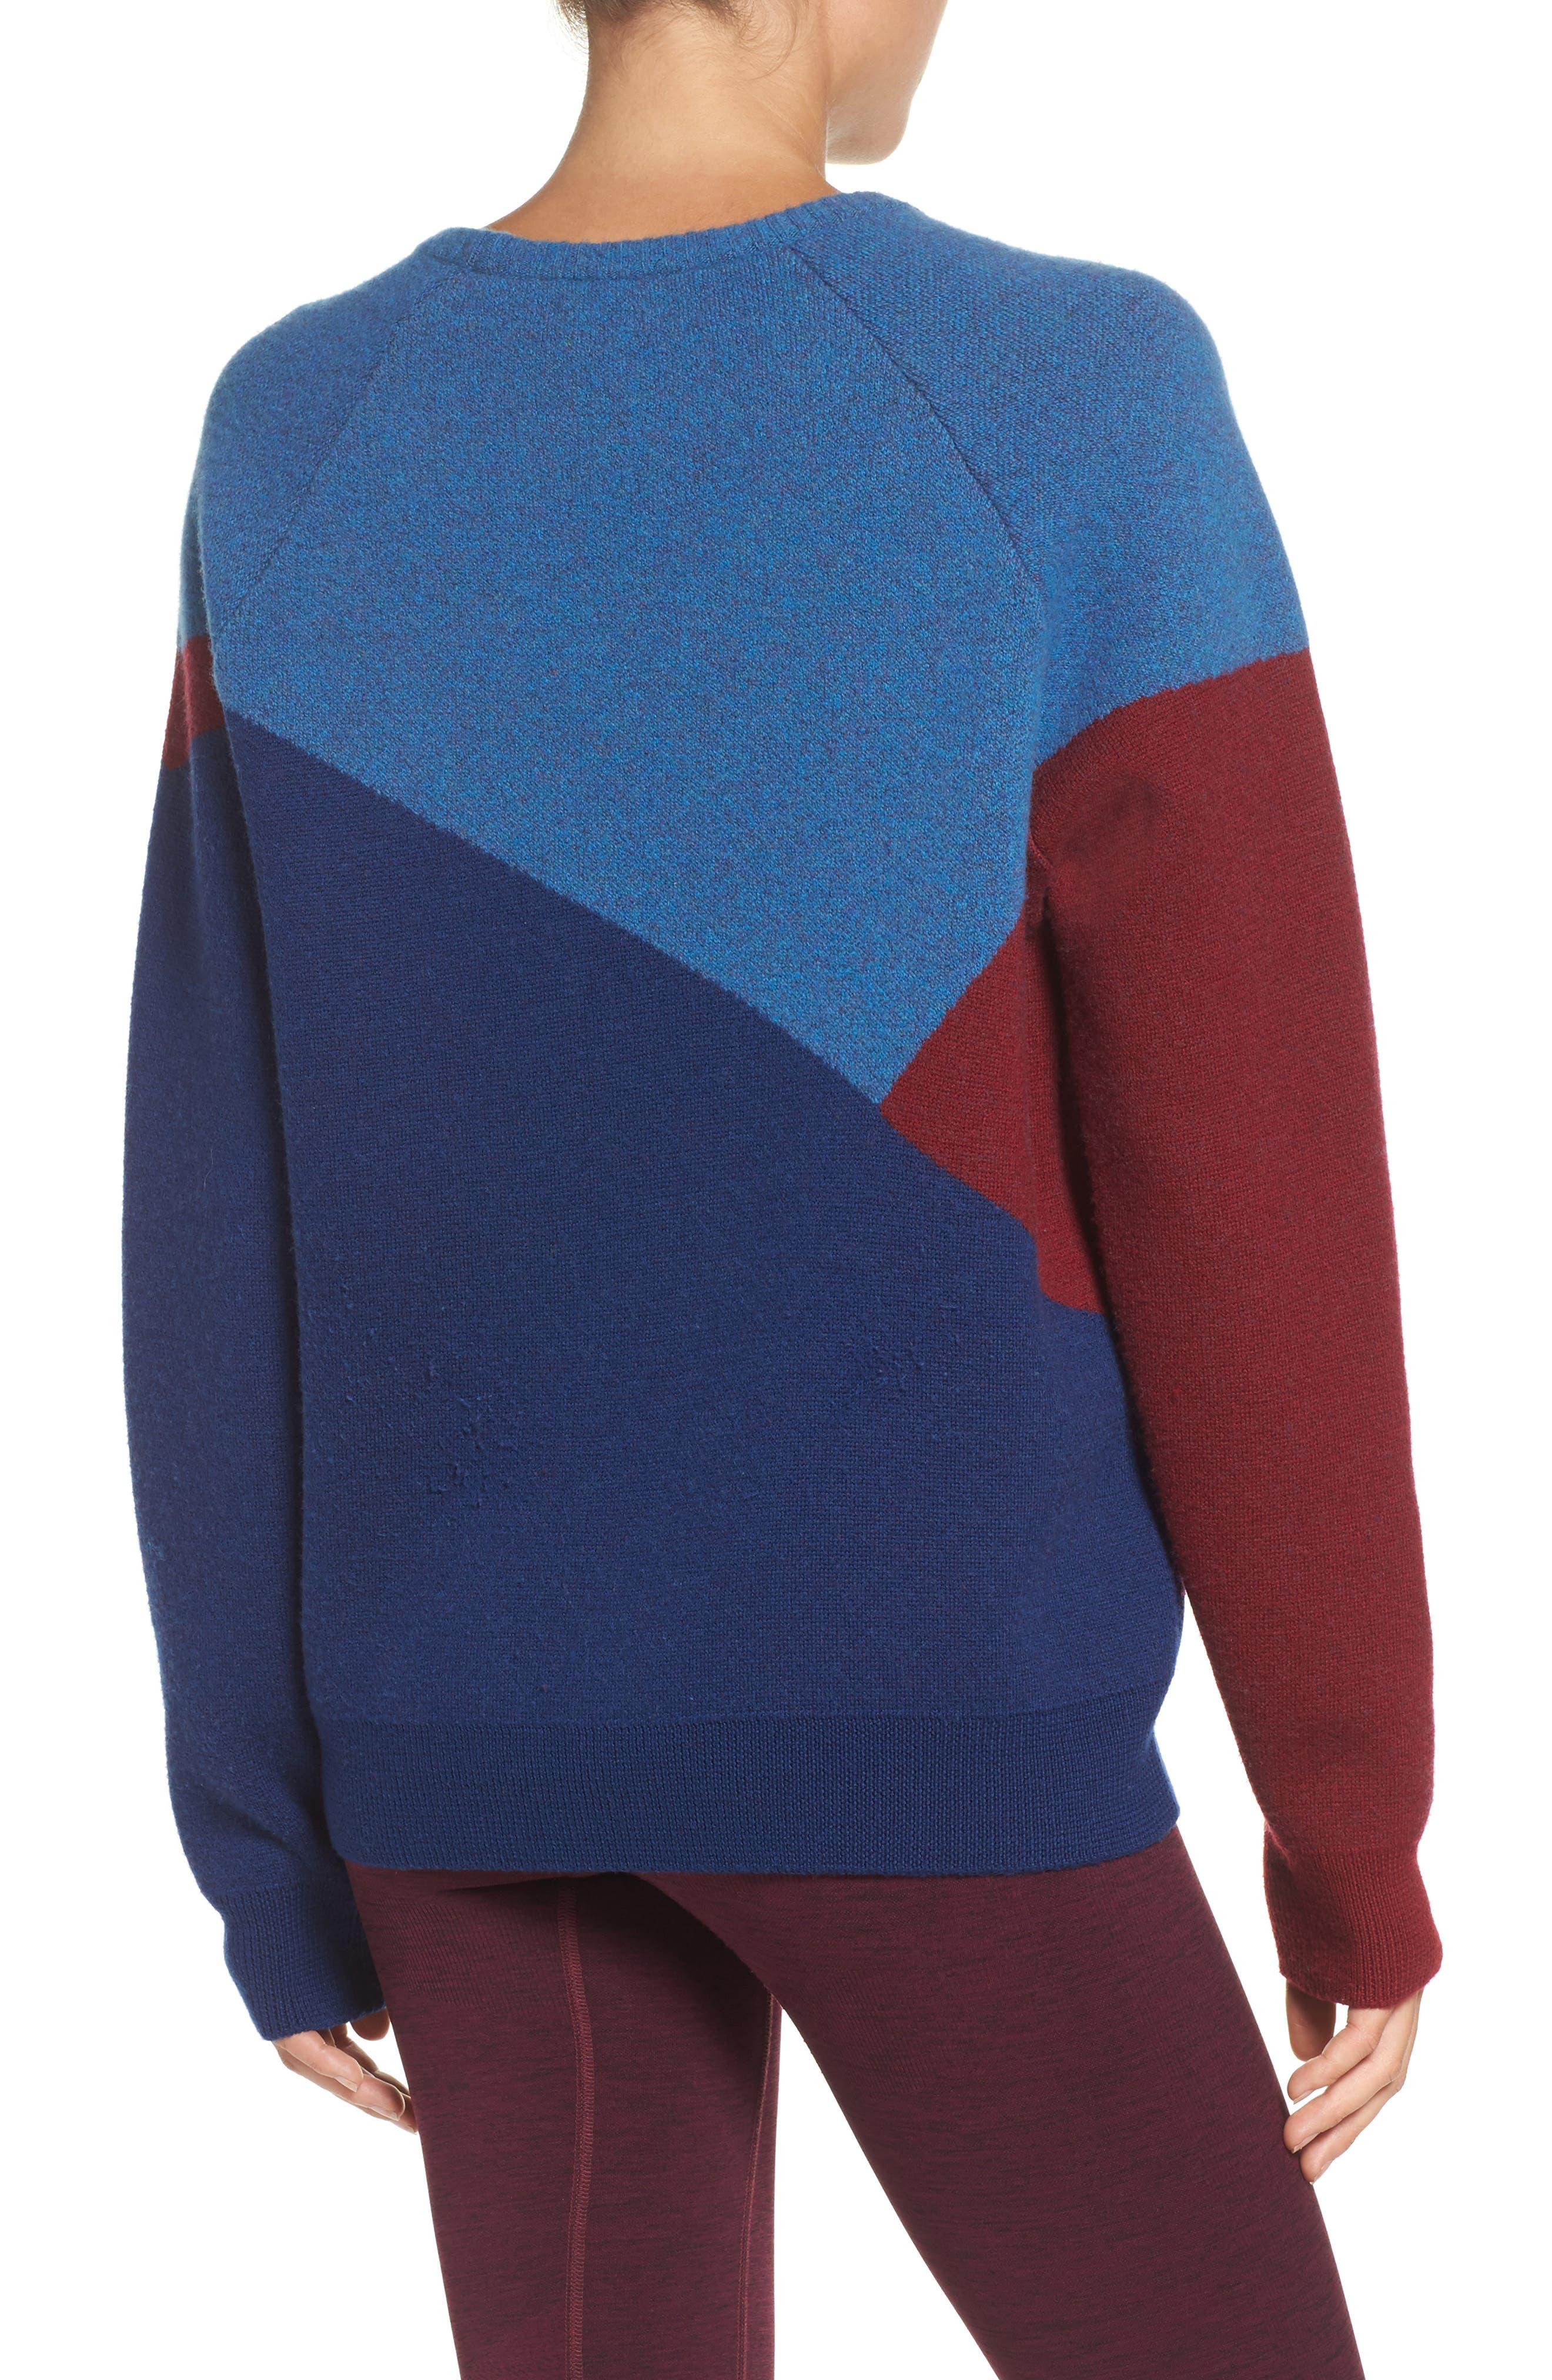 Winter Waterboy Sweater,                             Alternate thumbnail 2, color,